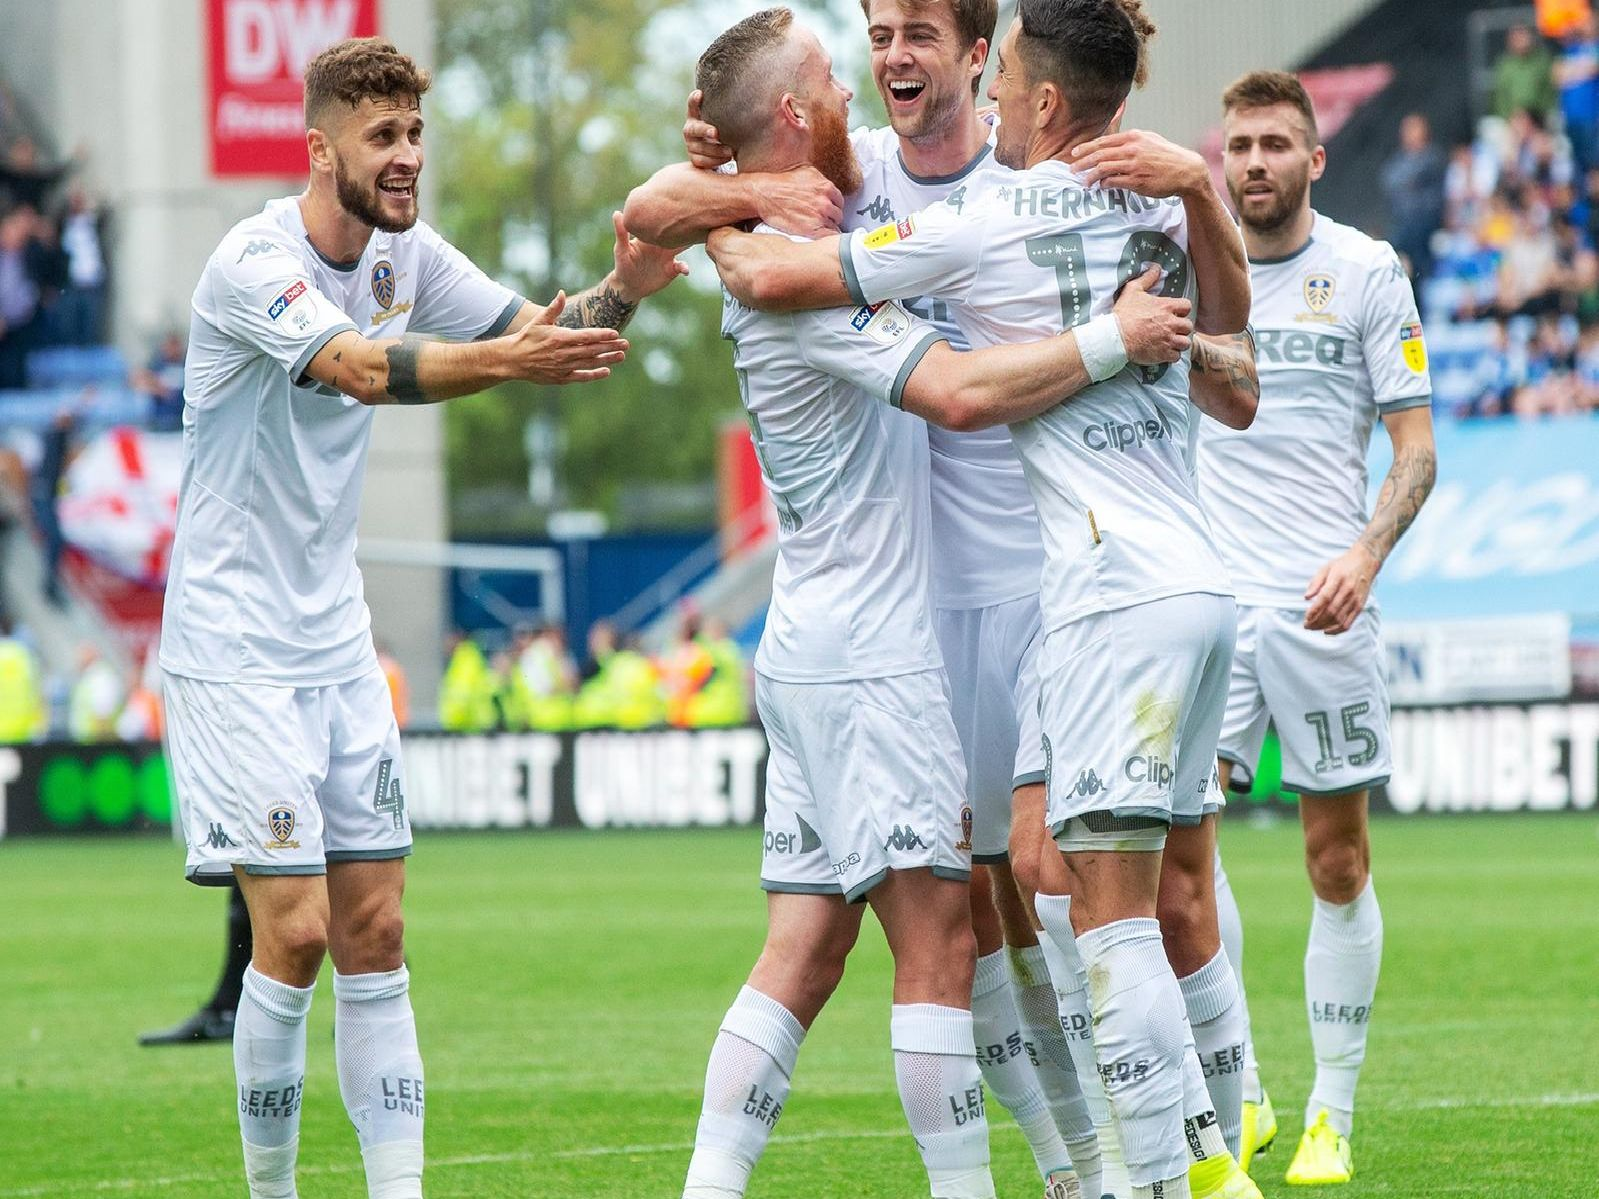 Leeds United players celebrate goal at Wigan Athletic